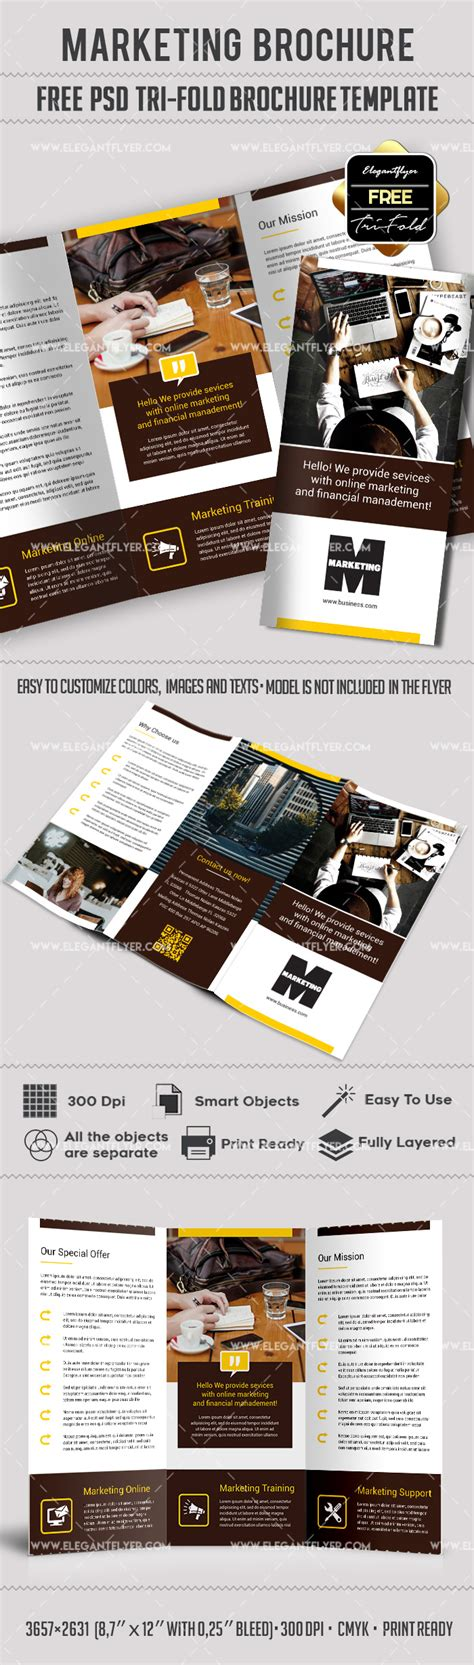 Tri Fold Brochure Templates Free By Elegantflyer Marketing Free Tri Fold Psd Brochure Template By